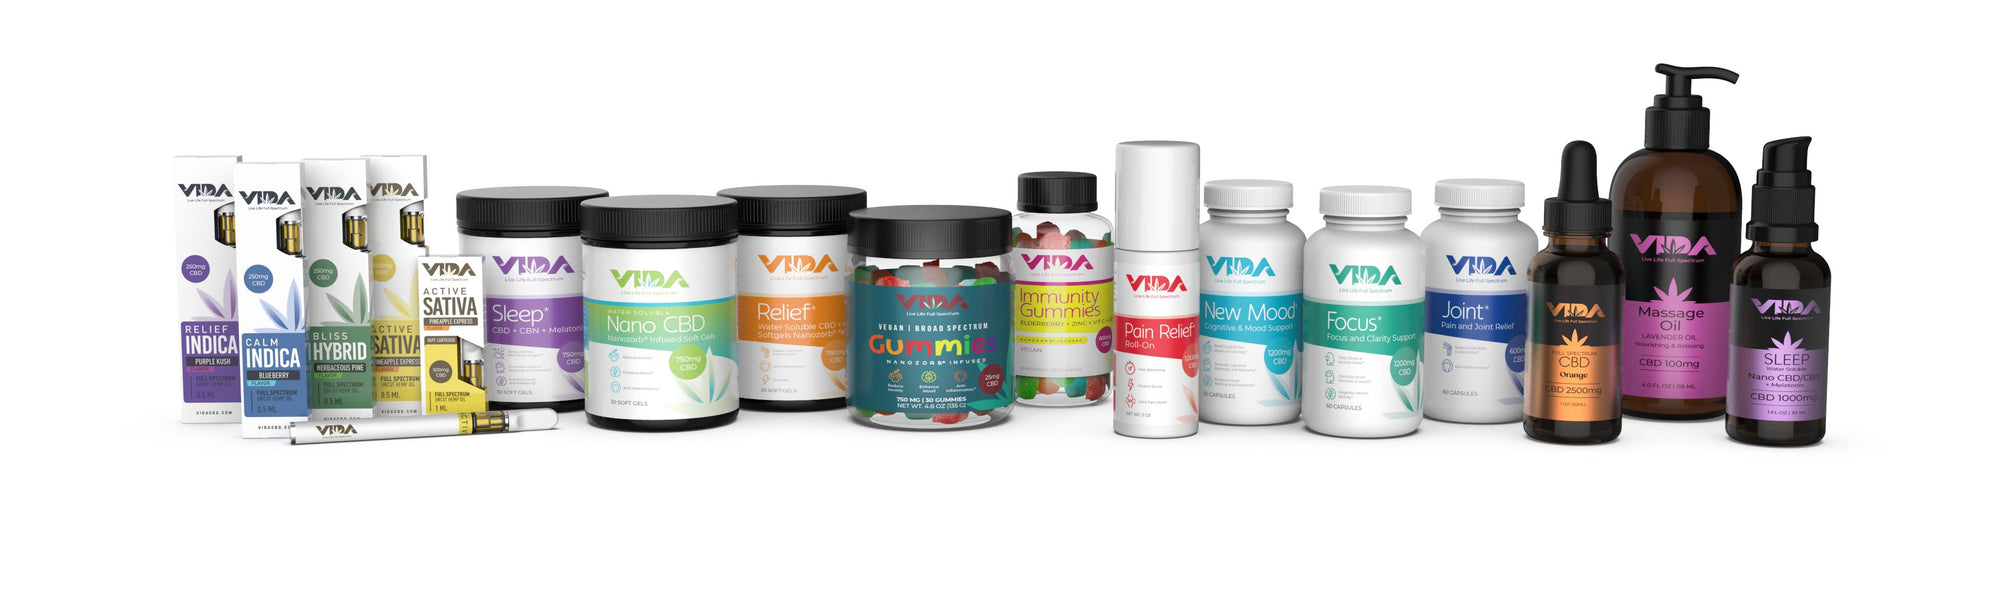 All VIDA Products